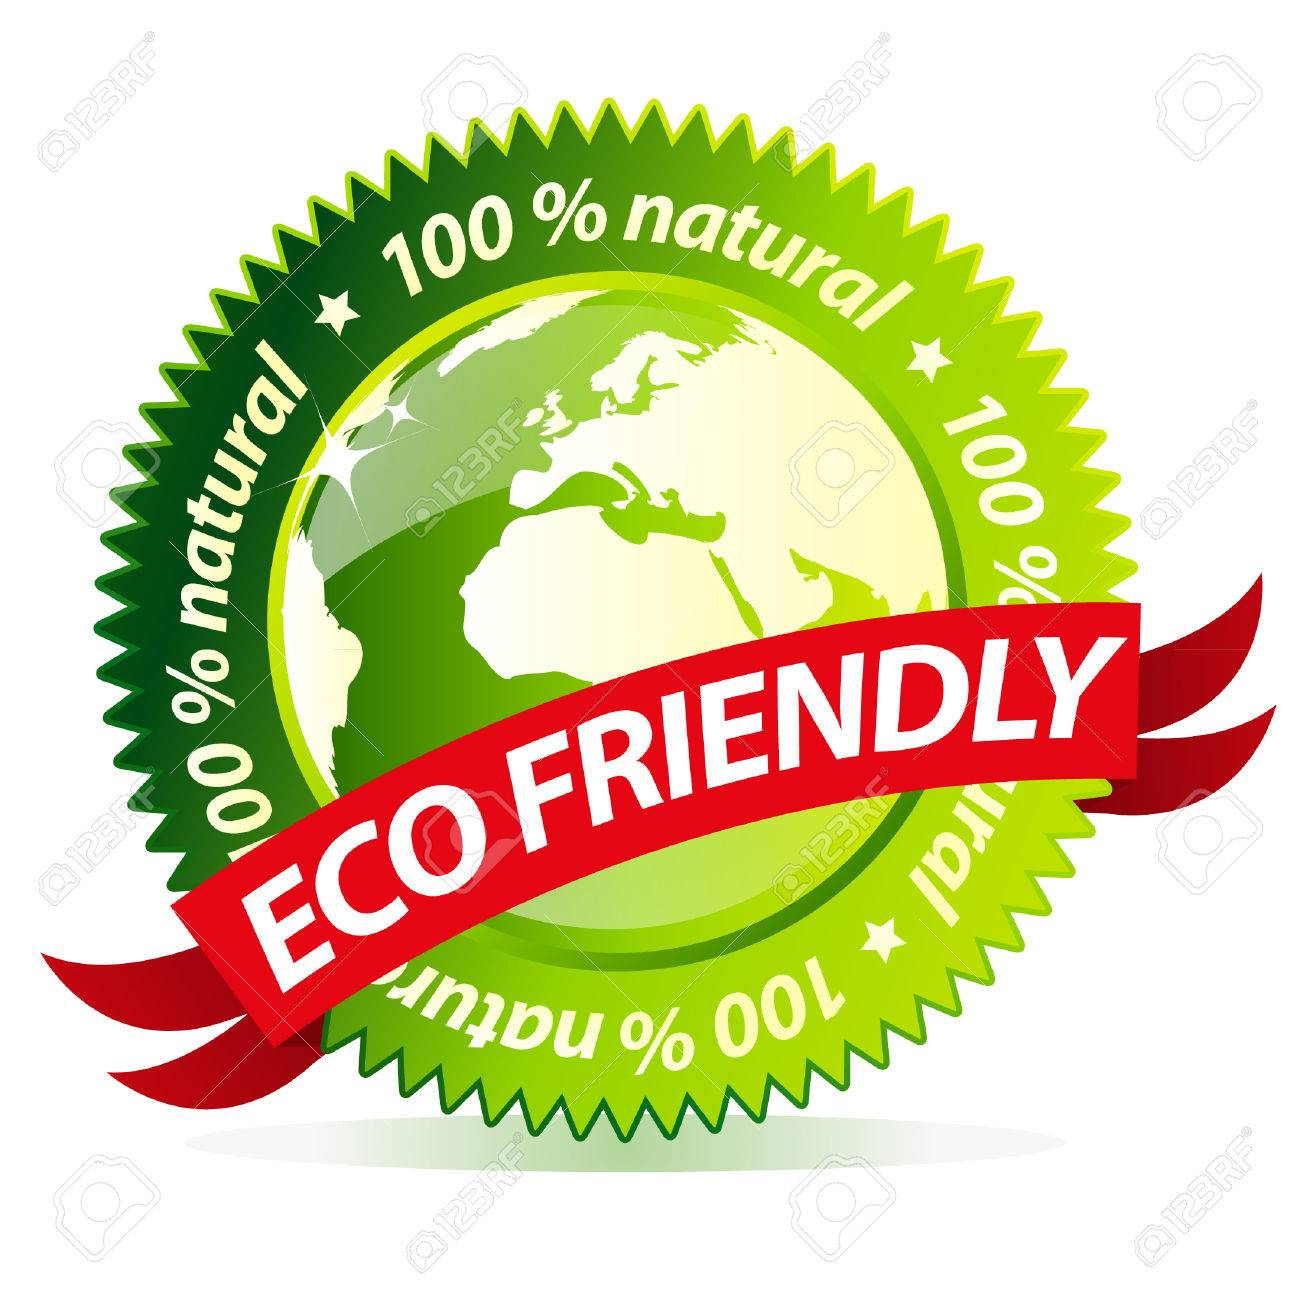 Eco friendly earth natural sign Stock Vector - 8628969